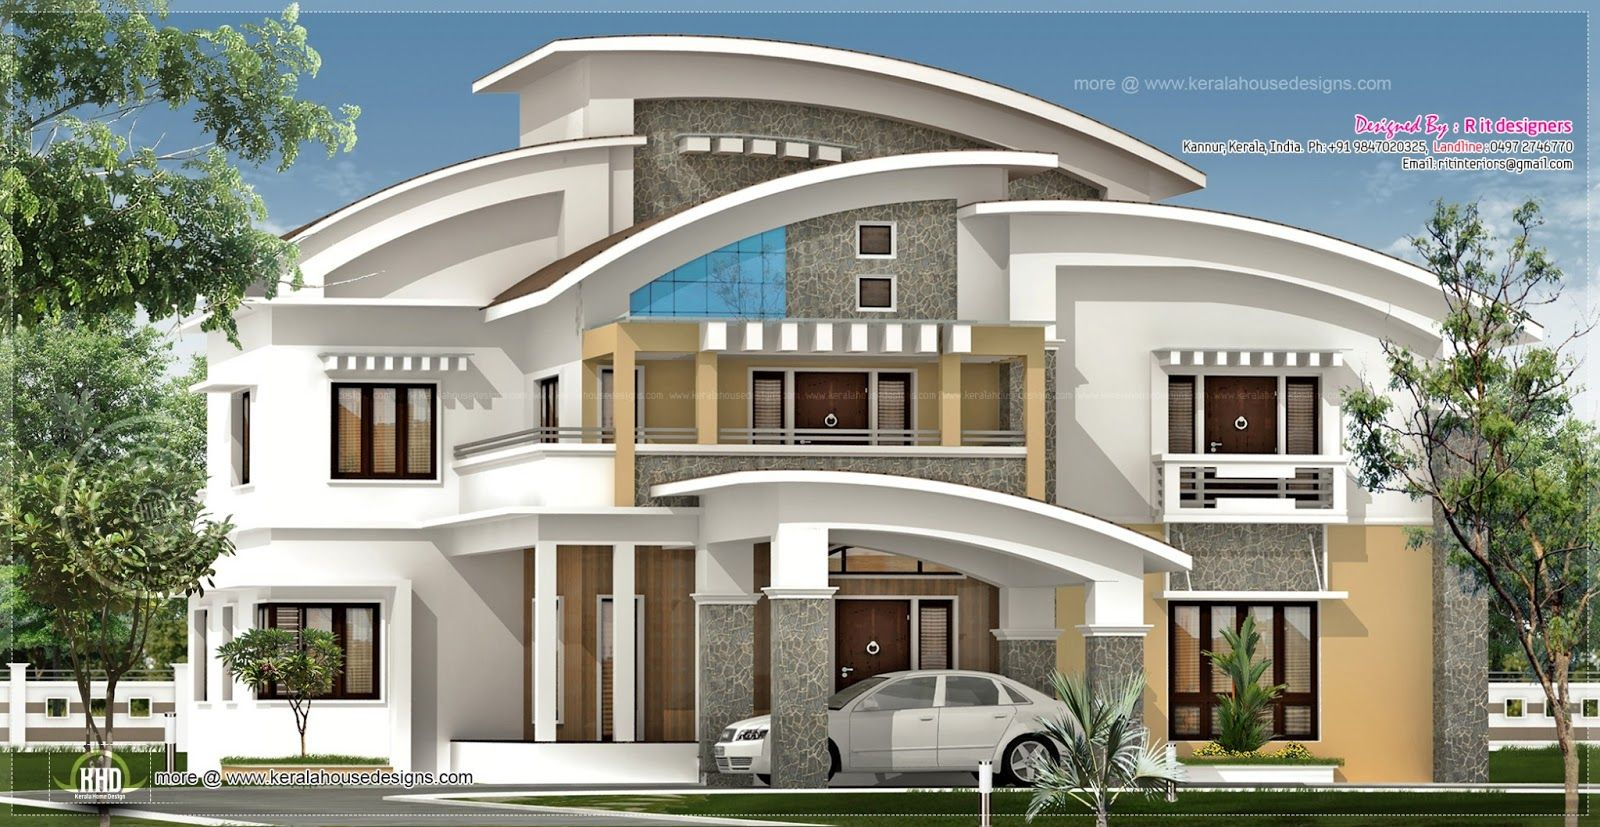 2b5ffab8644065433b405ca2eeb3efe6 luxury home exterior designs 3750 square feet luxury villa on small luxury home exterior design